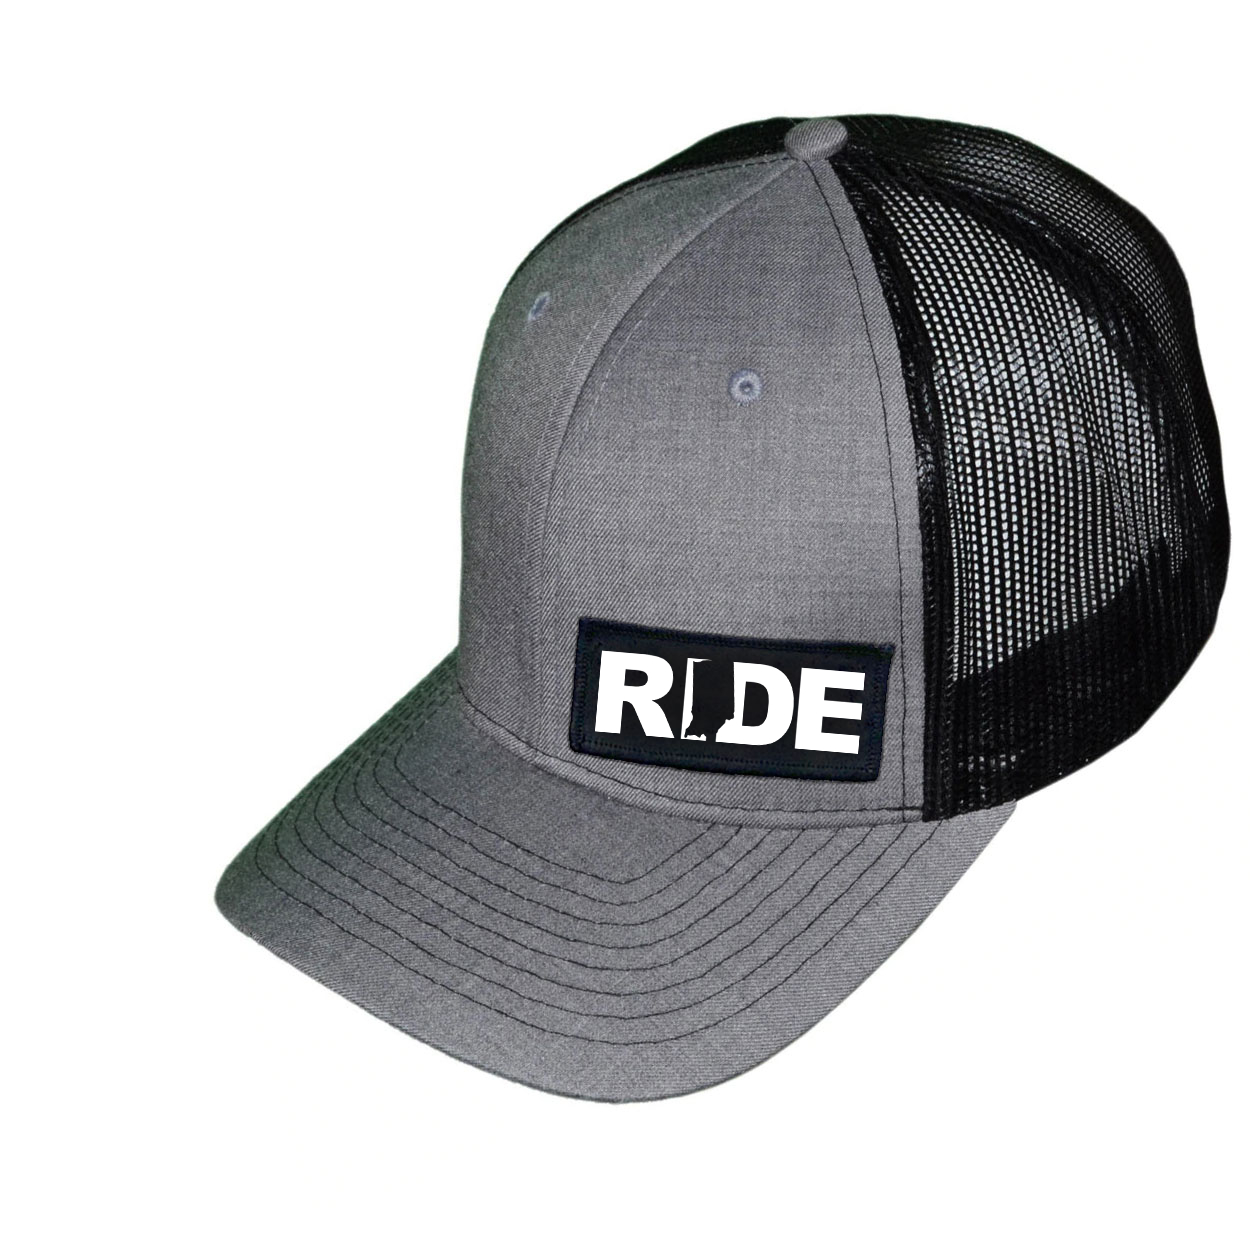 Ride Indiana Night Out Woven Patch Snapback Trucker Hat Heather Gray/Black (White Logo)